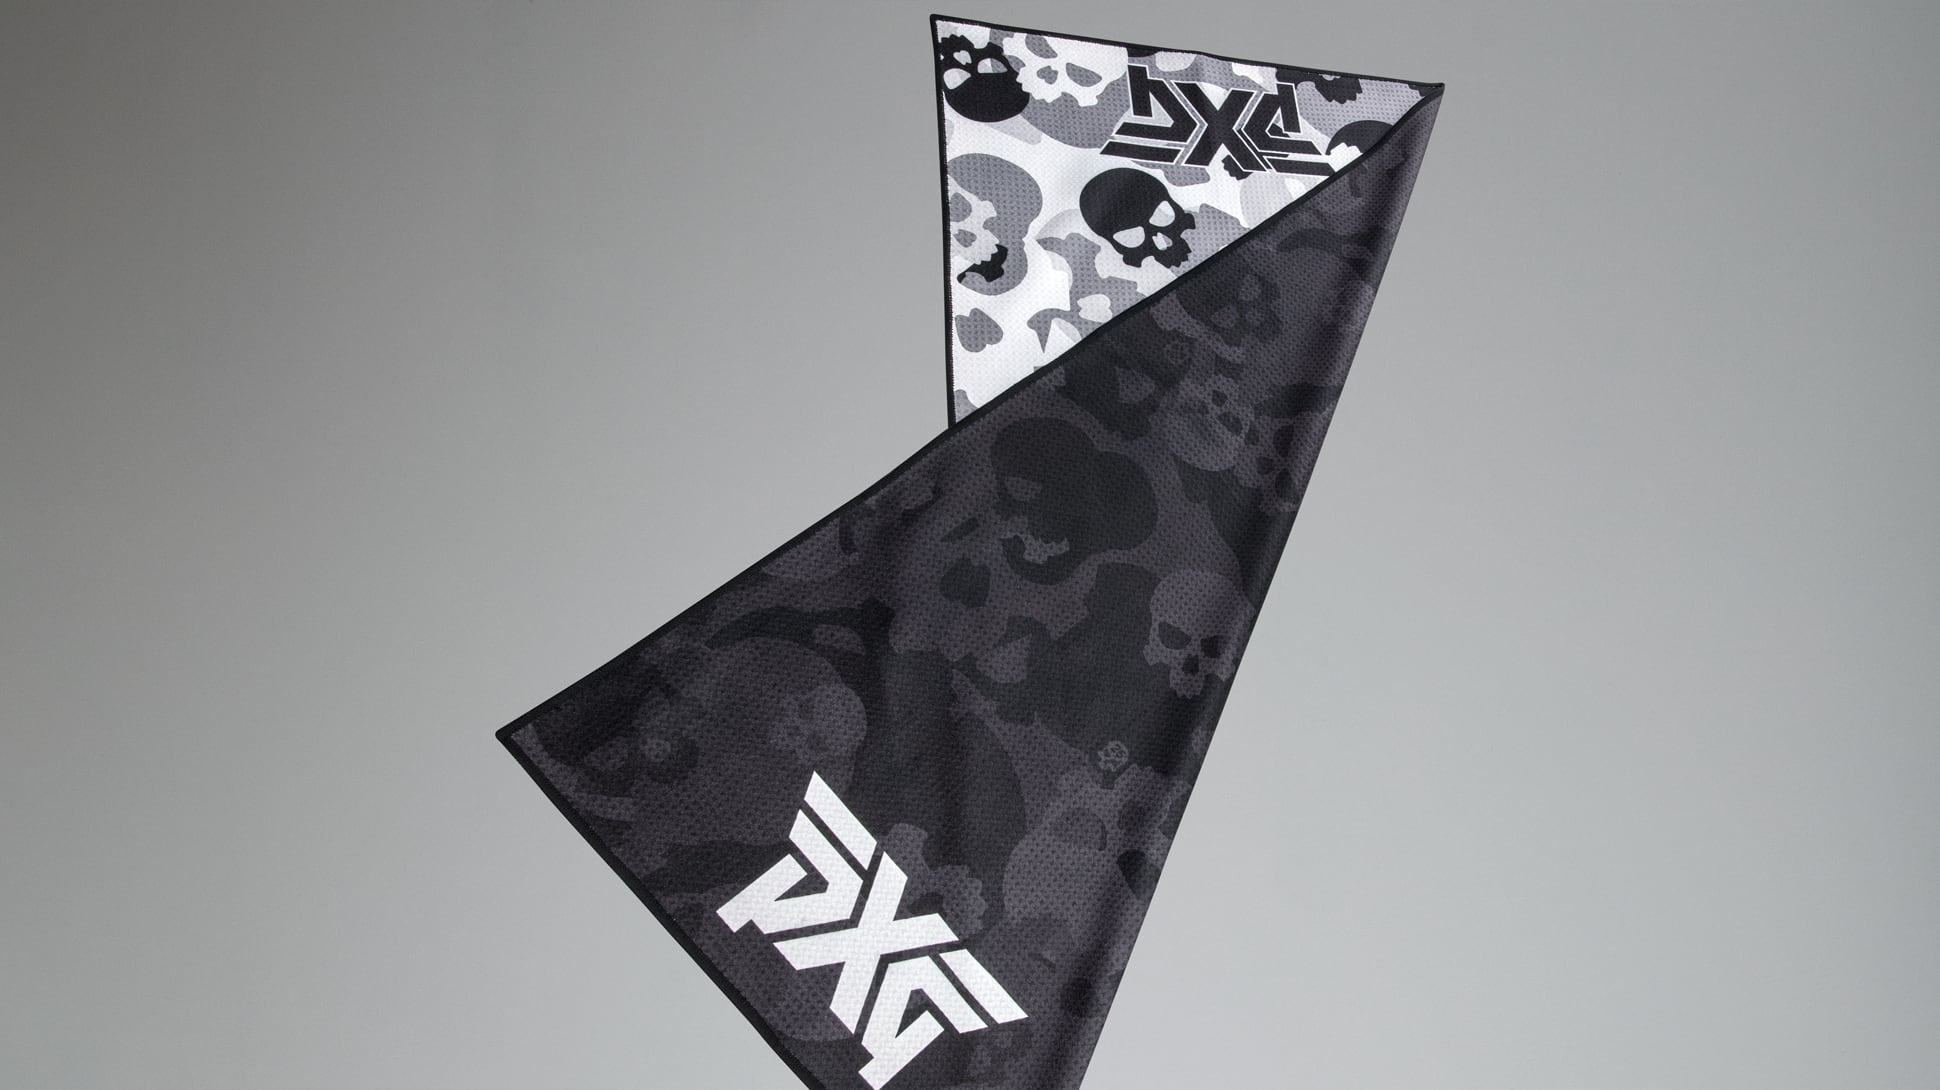 Darkness Skull Camo Players Towel Image 6